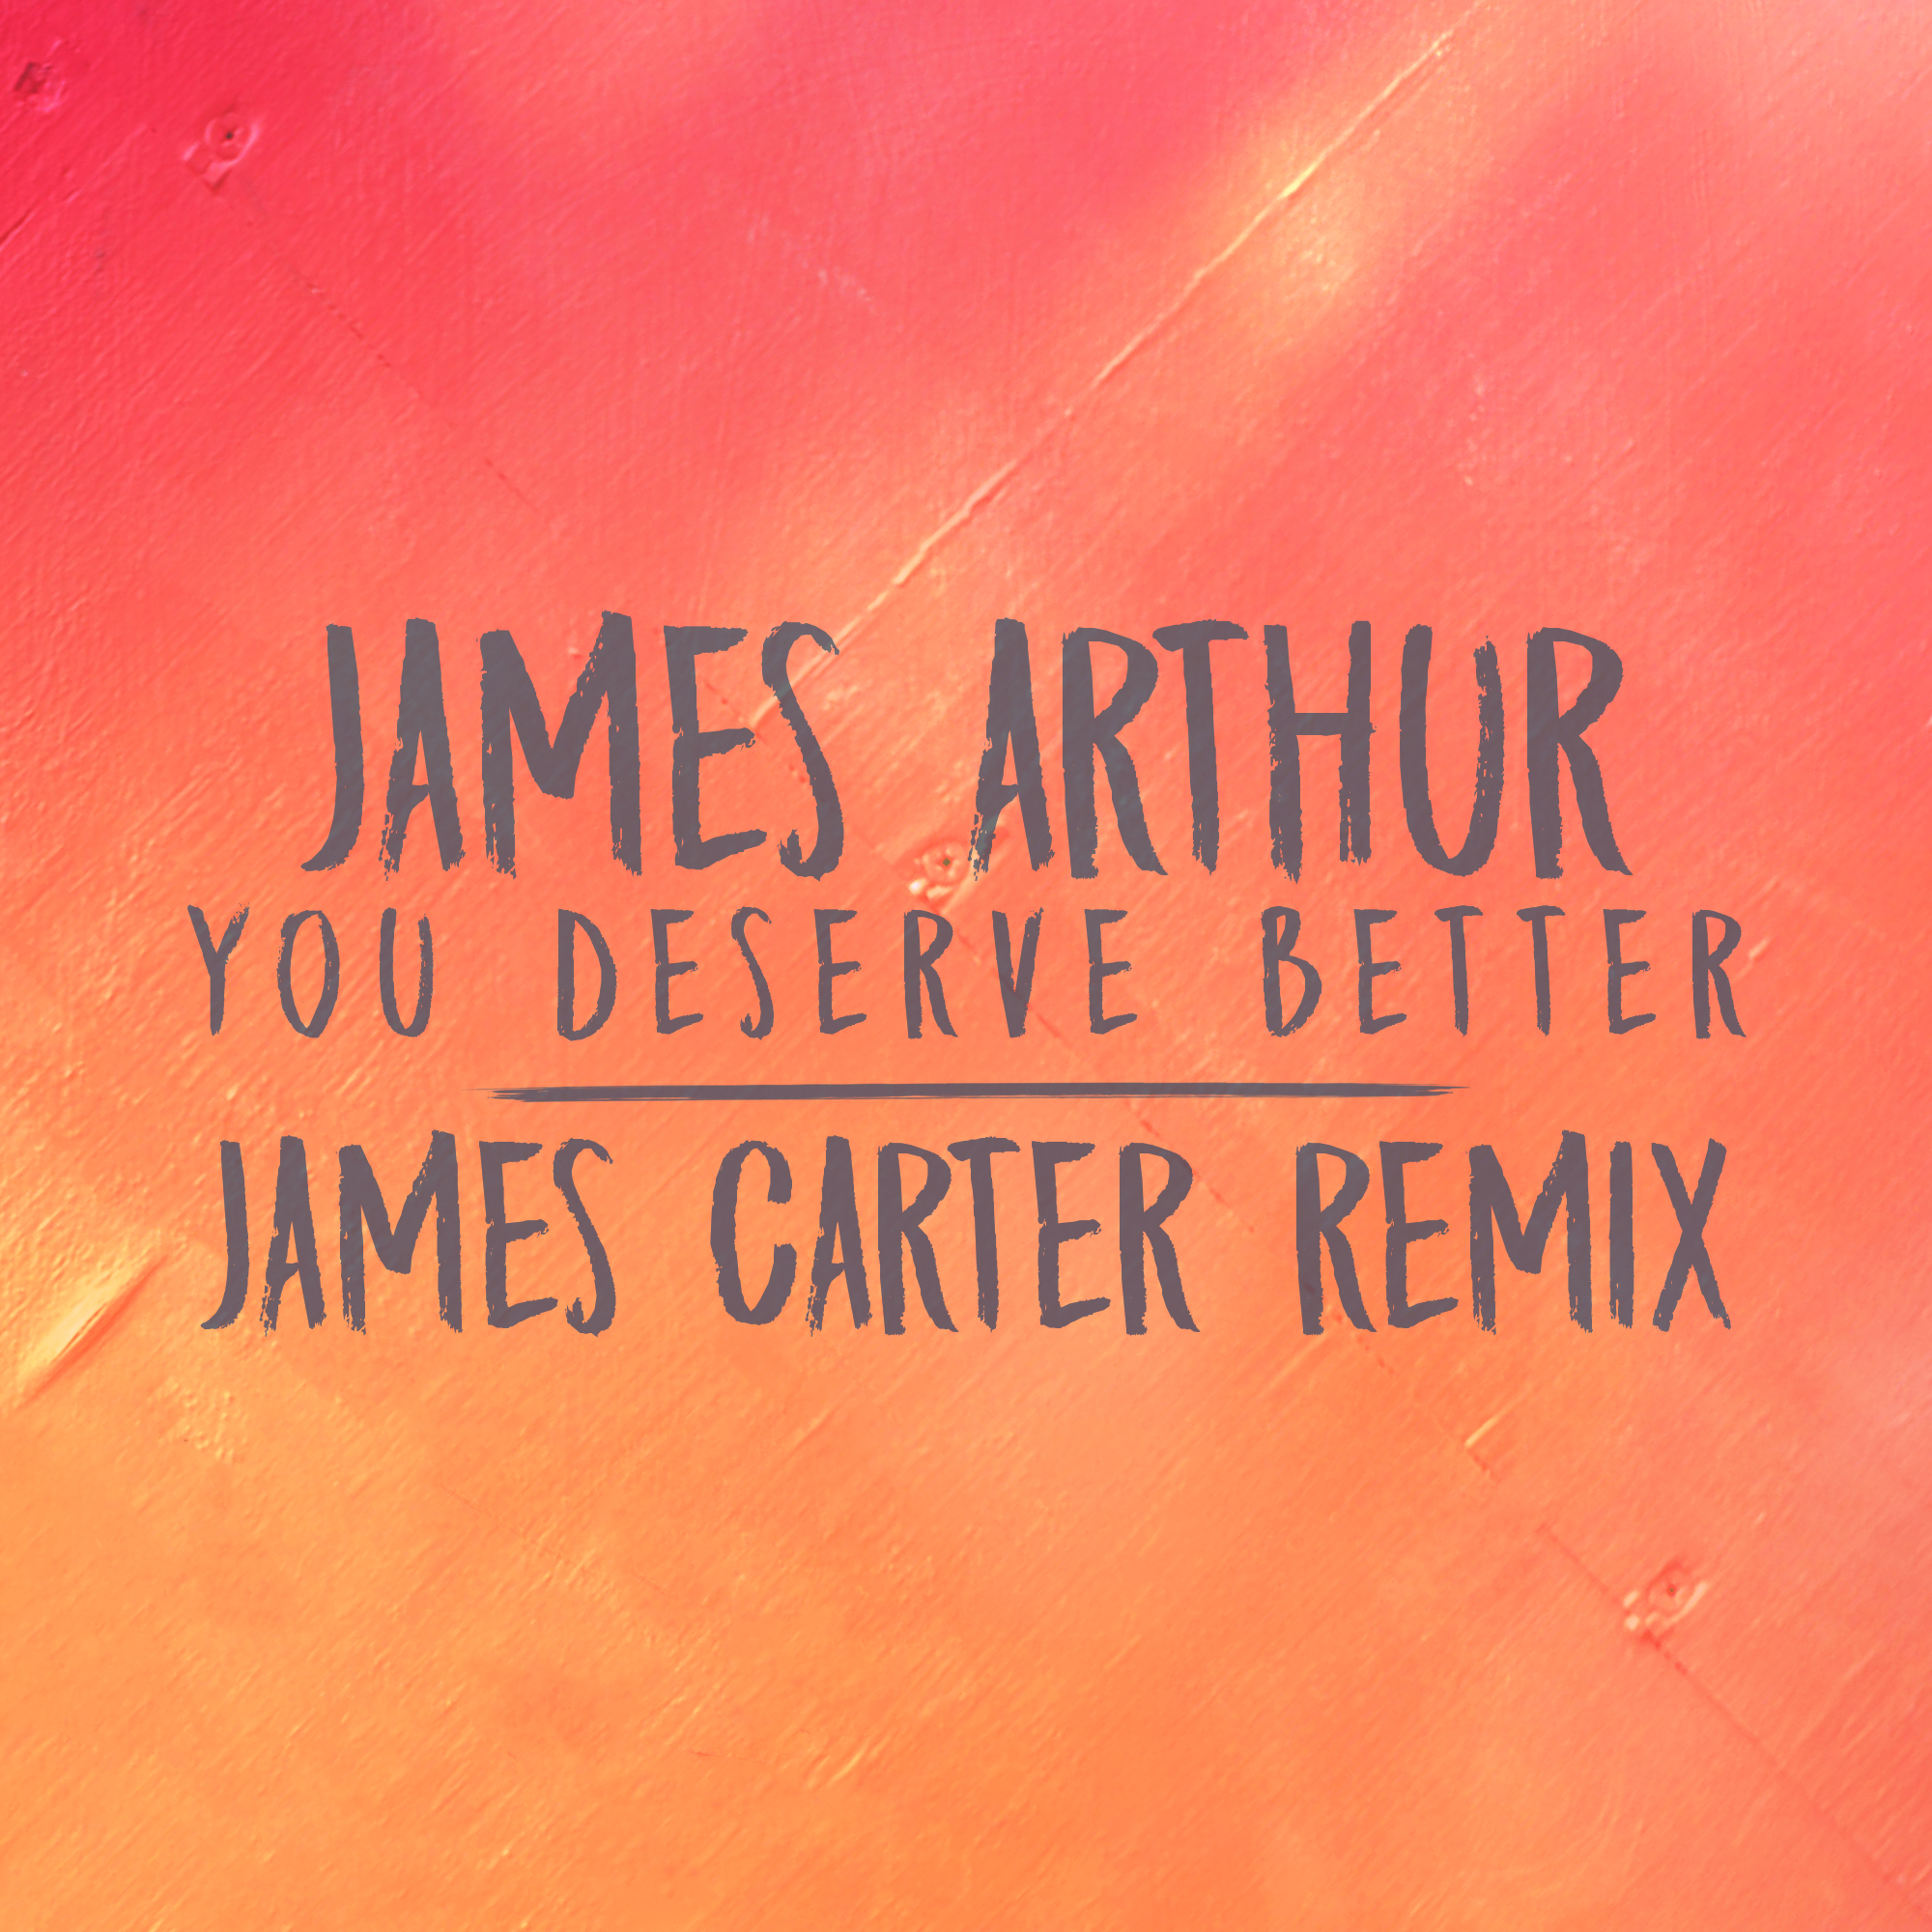 James Arthur - You Deserve Better (James Carter Remix)